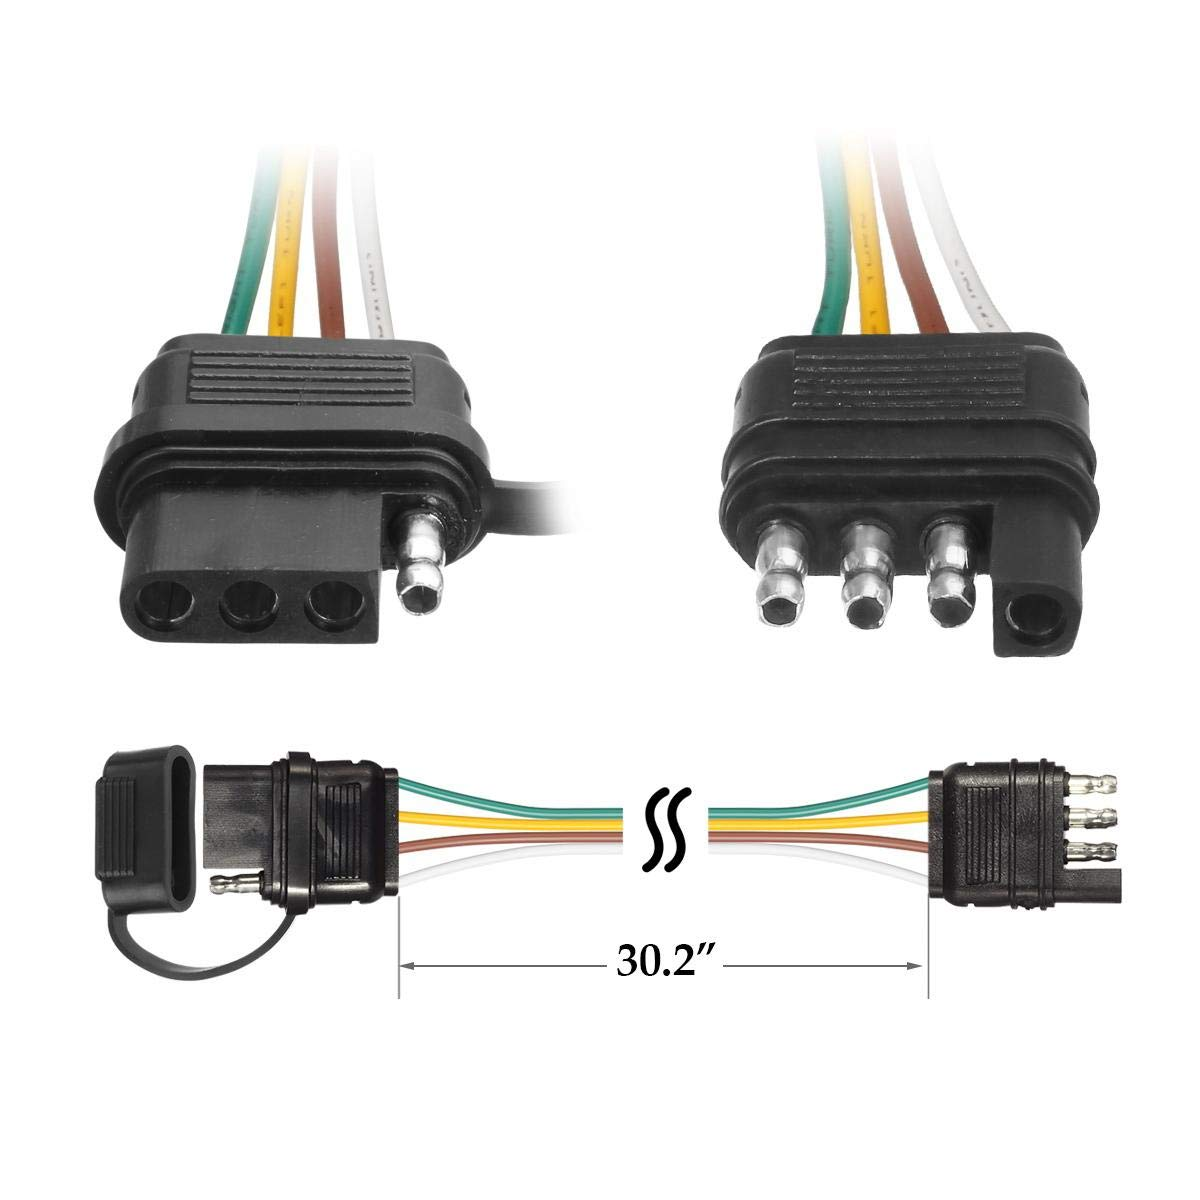 32 Inch 4 Way Flat 4 Pin Universal Wiring Connector 4 Pin Hitch Light Trailer Wiring Harness Extender with Rubber Cab for LED Brake Tailgate Light Bar Partsam Trailer Wire Extension Plug